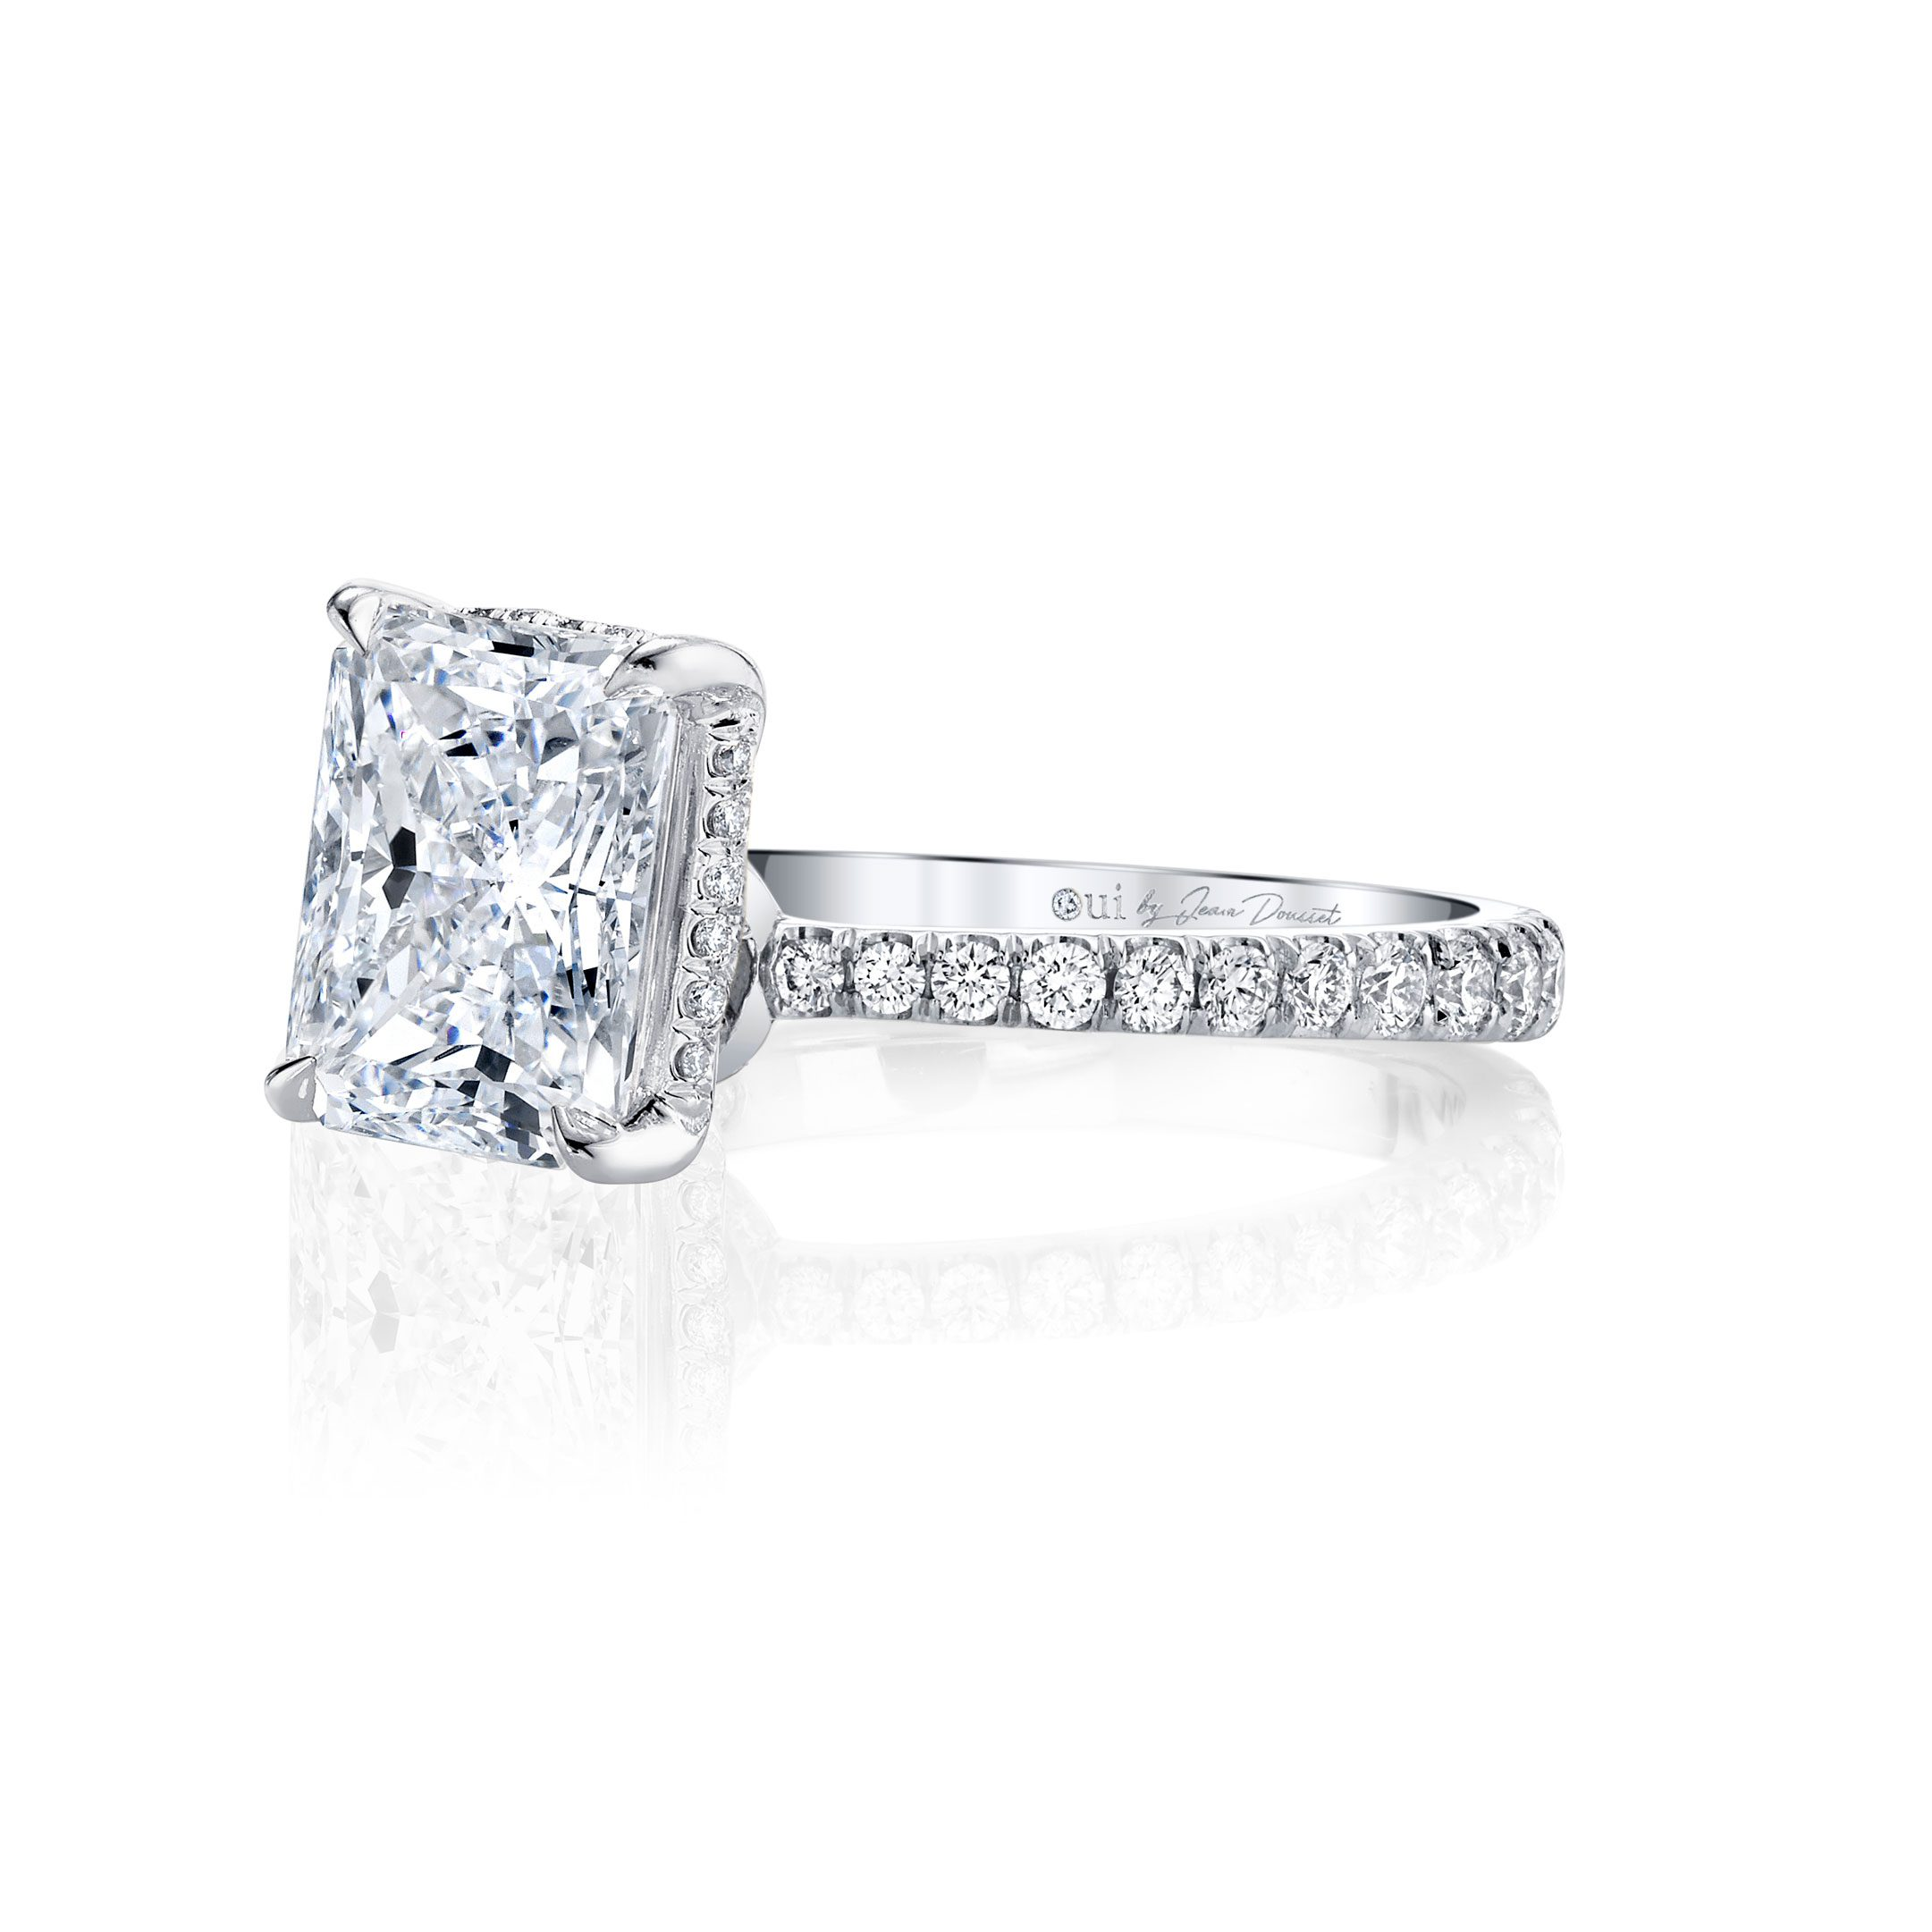 Eloise Solitaire Cushion Cut Lab Diamond Engagement Ring with Pavé Band in 18k White Gold. Ring side view.